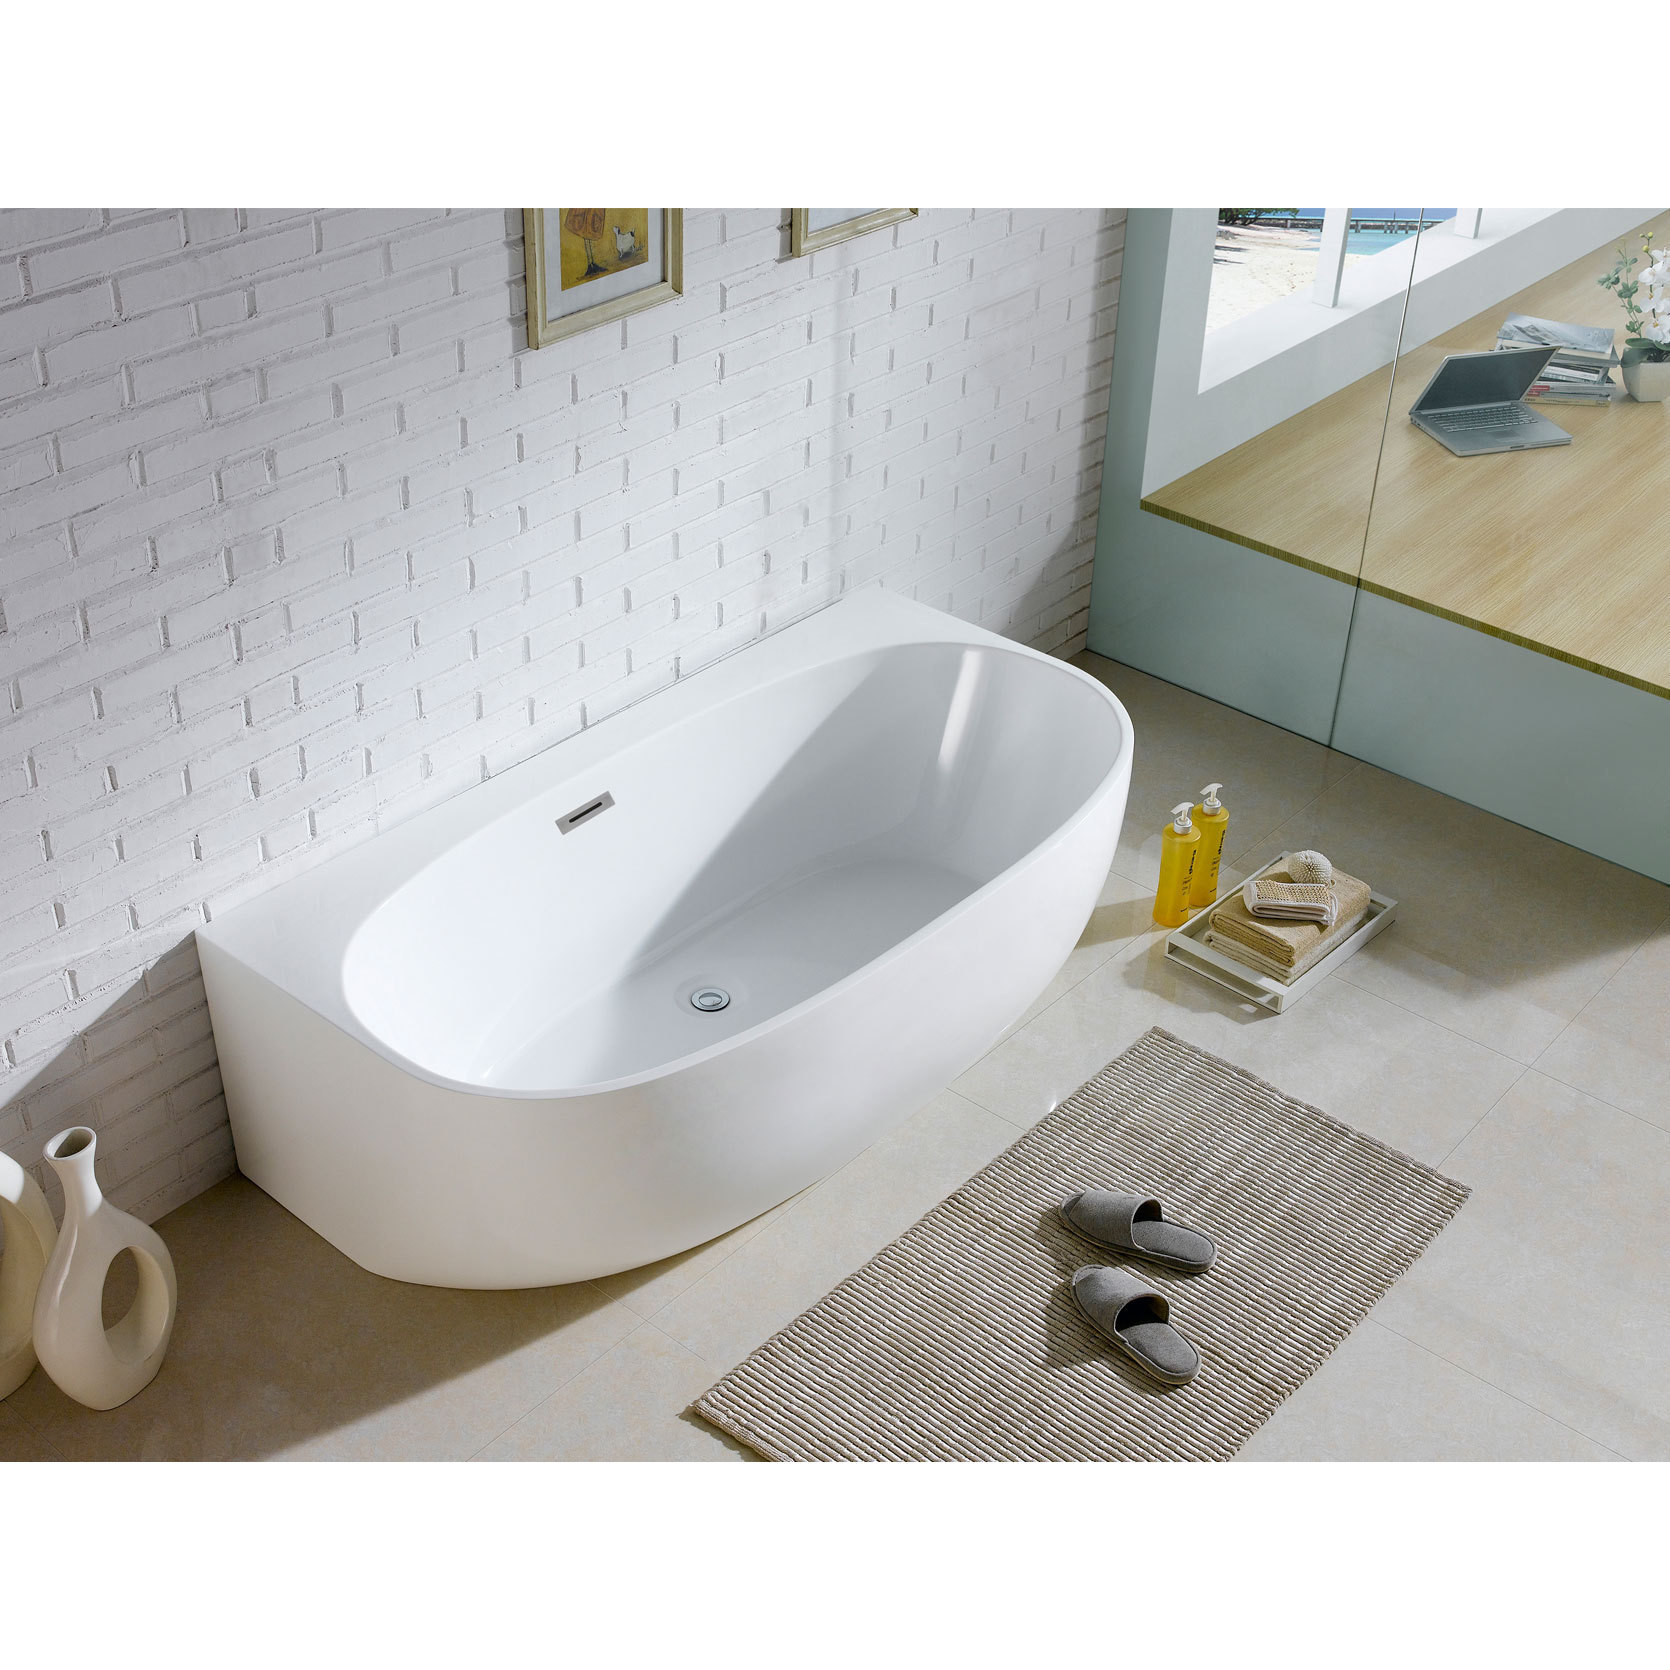 58 Inch Long Bathtub | Shapeyourminds.com